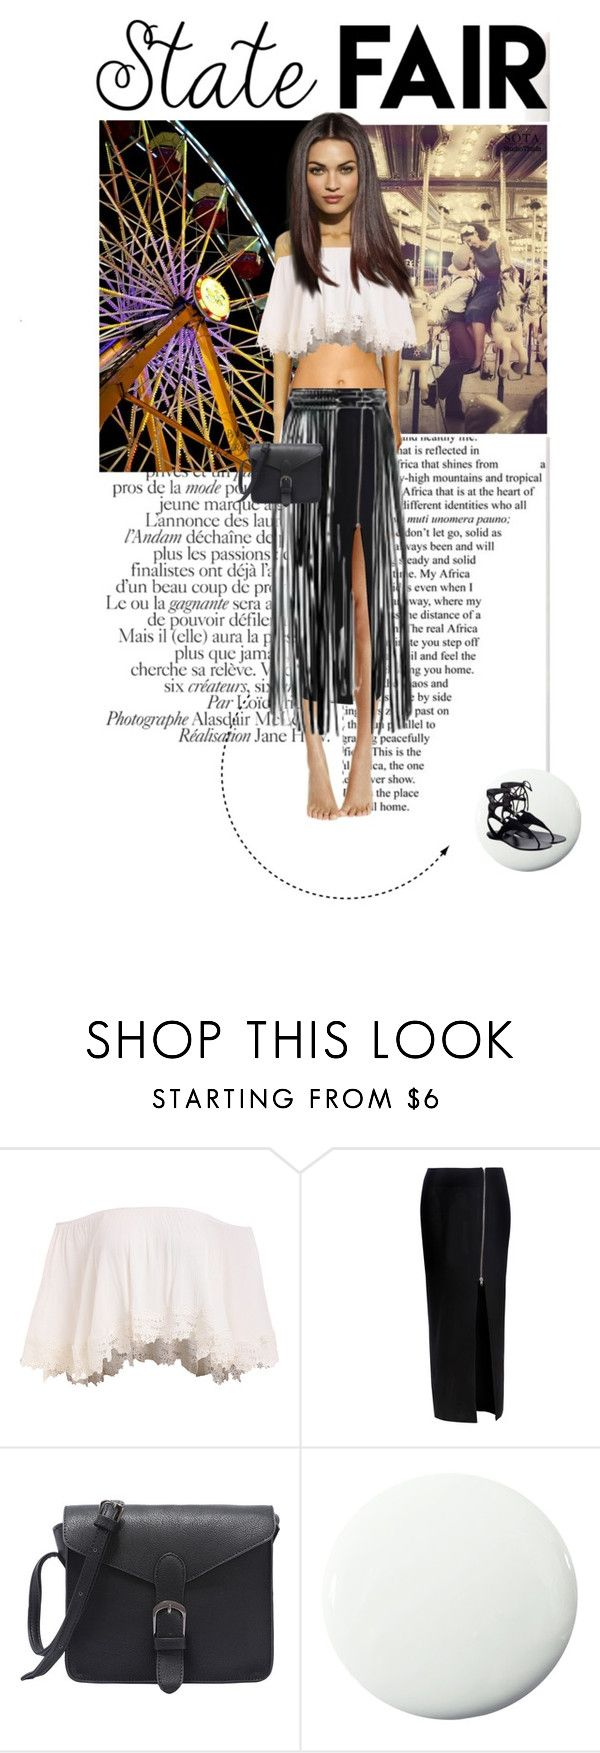 """""""State Fair Outfit #3"""" by doris-knezevic ❤ liked on Polyvore featuring Glamorous, YVY, Pure Home and Kendall + Kylie"""